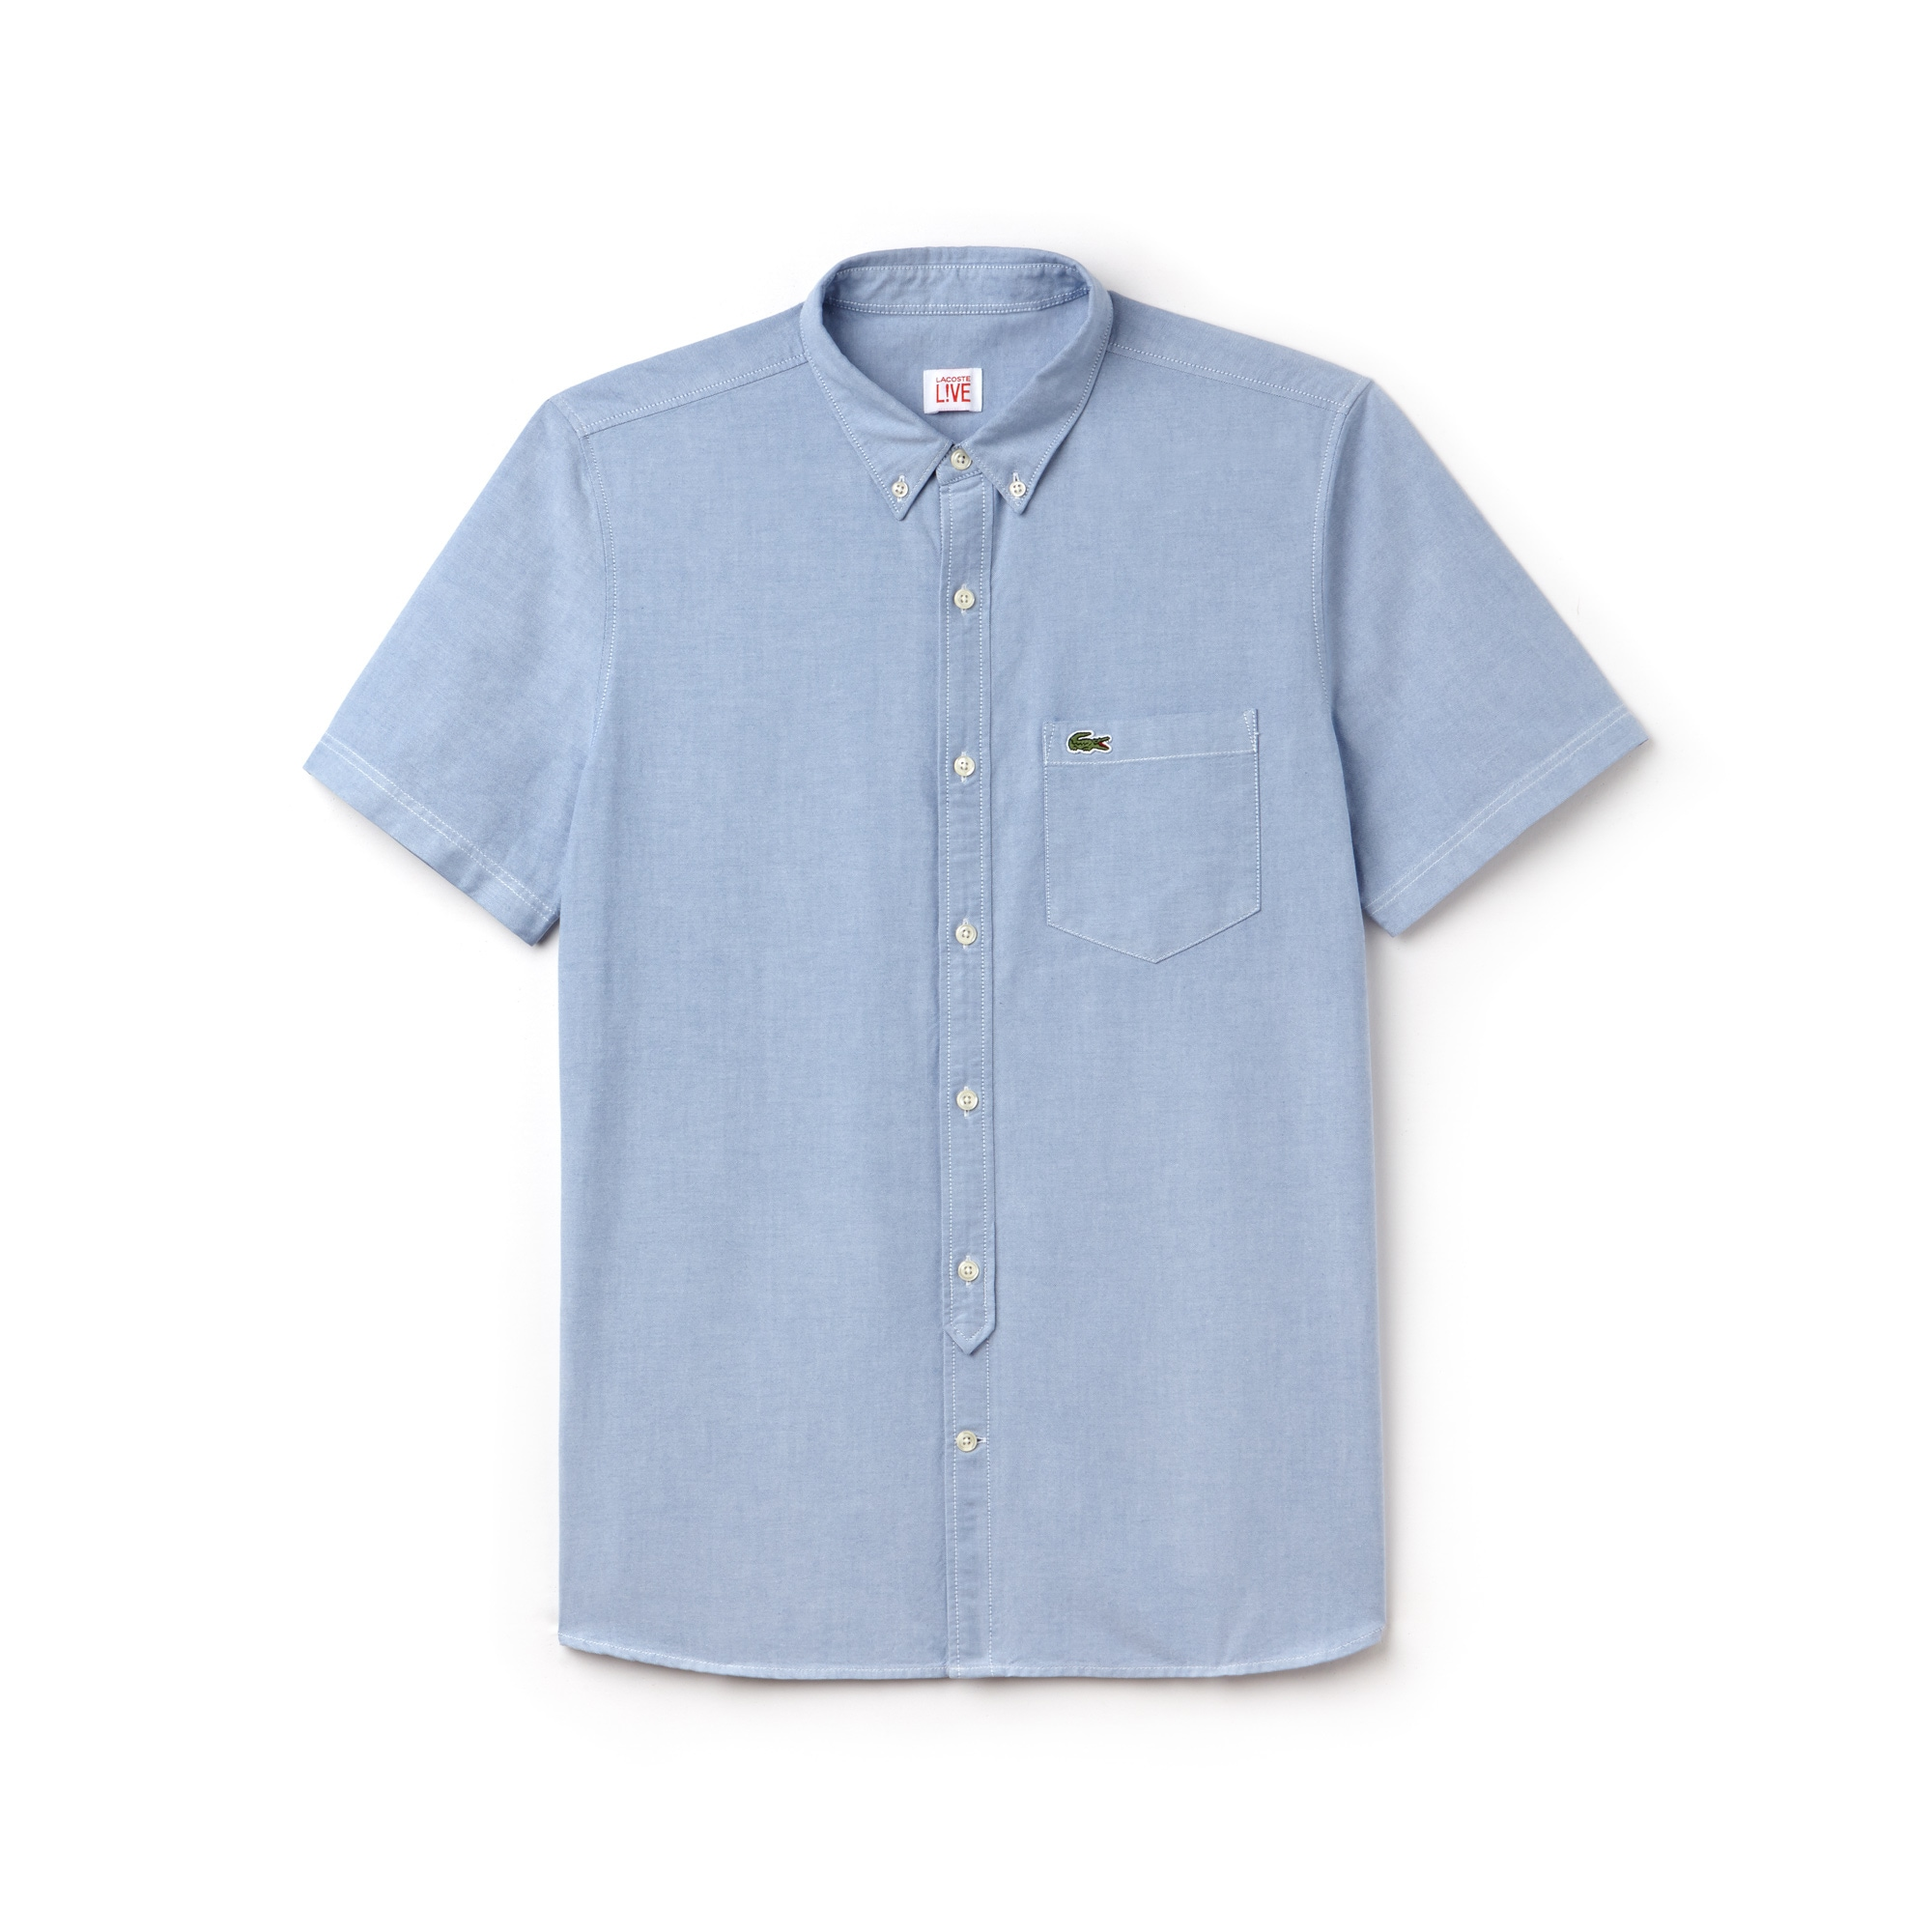 Men's Lacoste LIVE Oxford Cotton Shirt